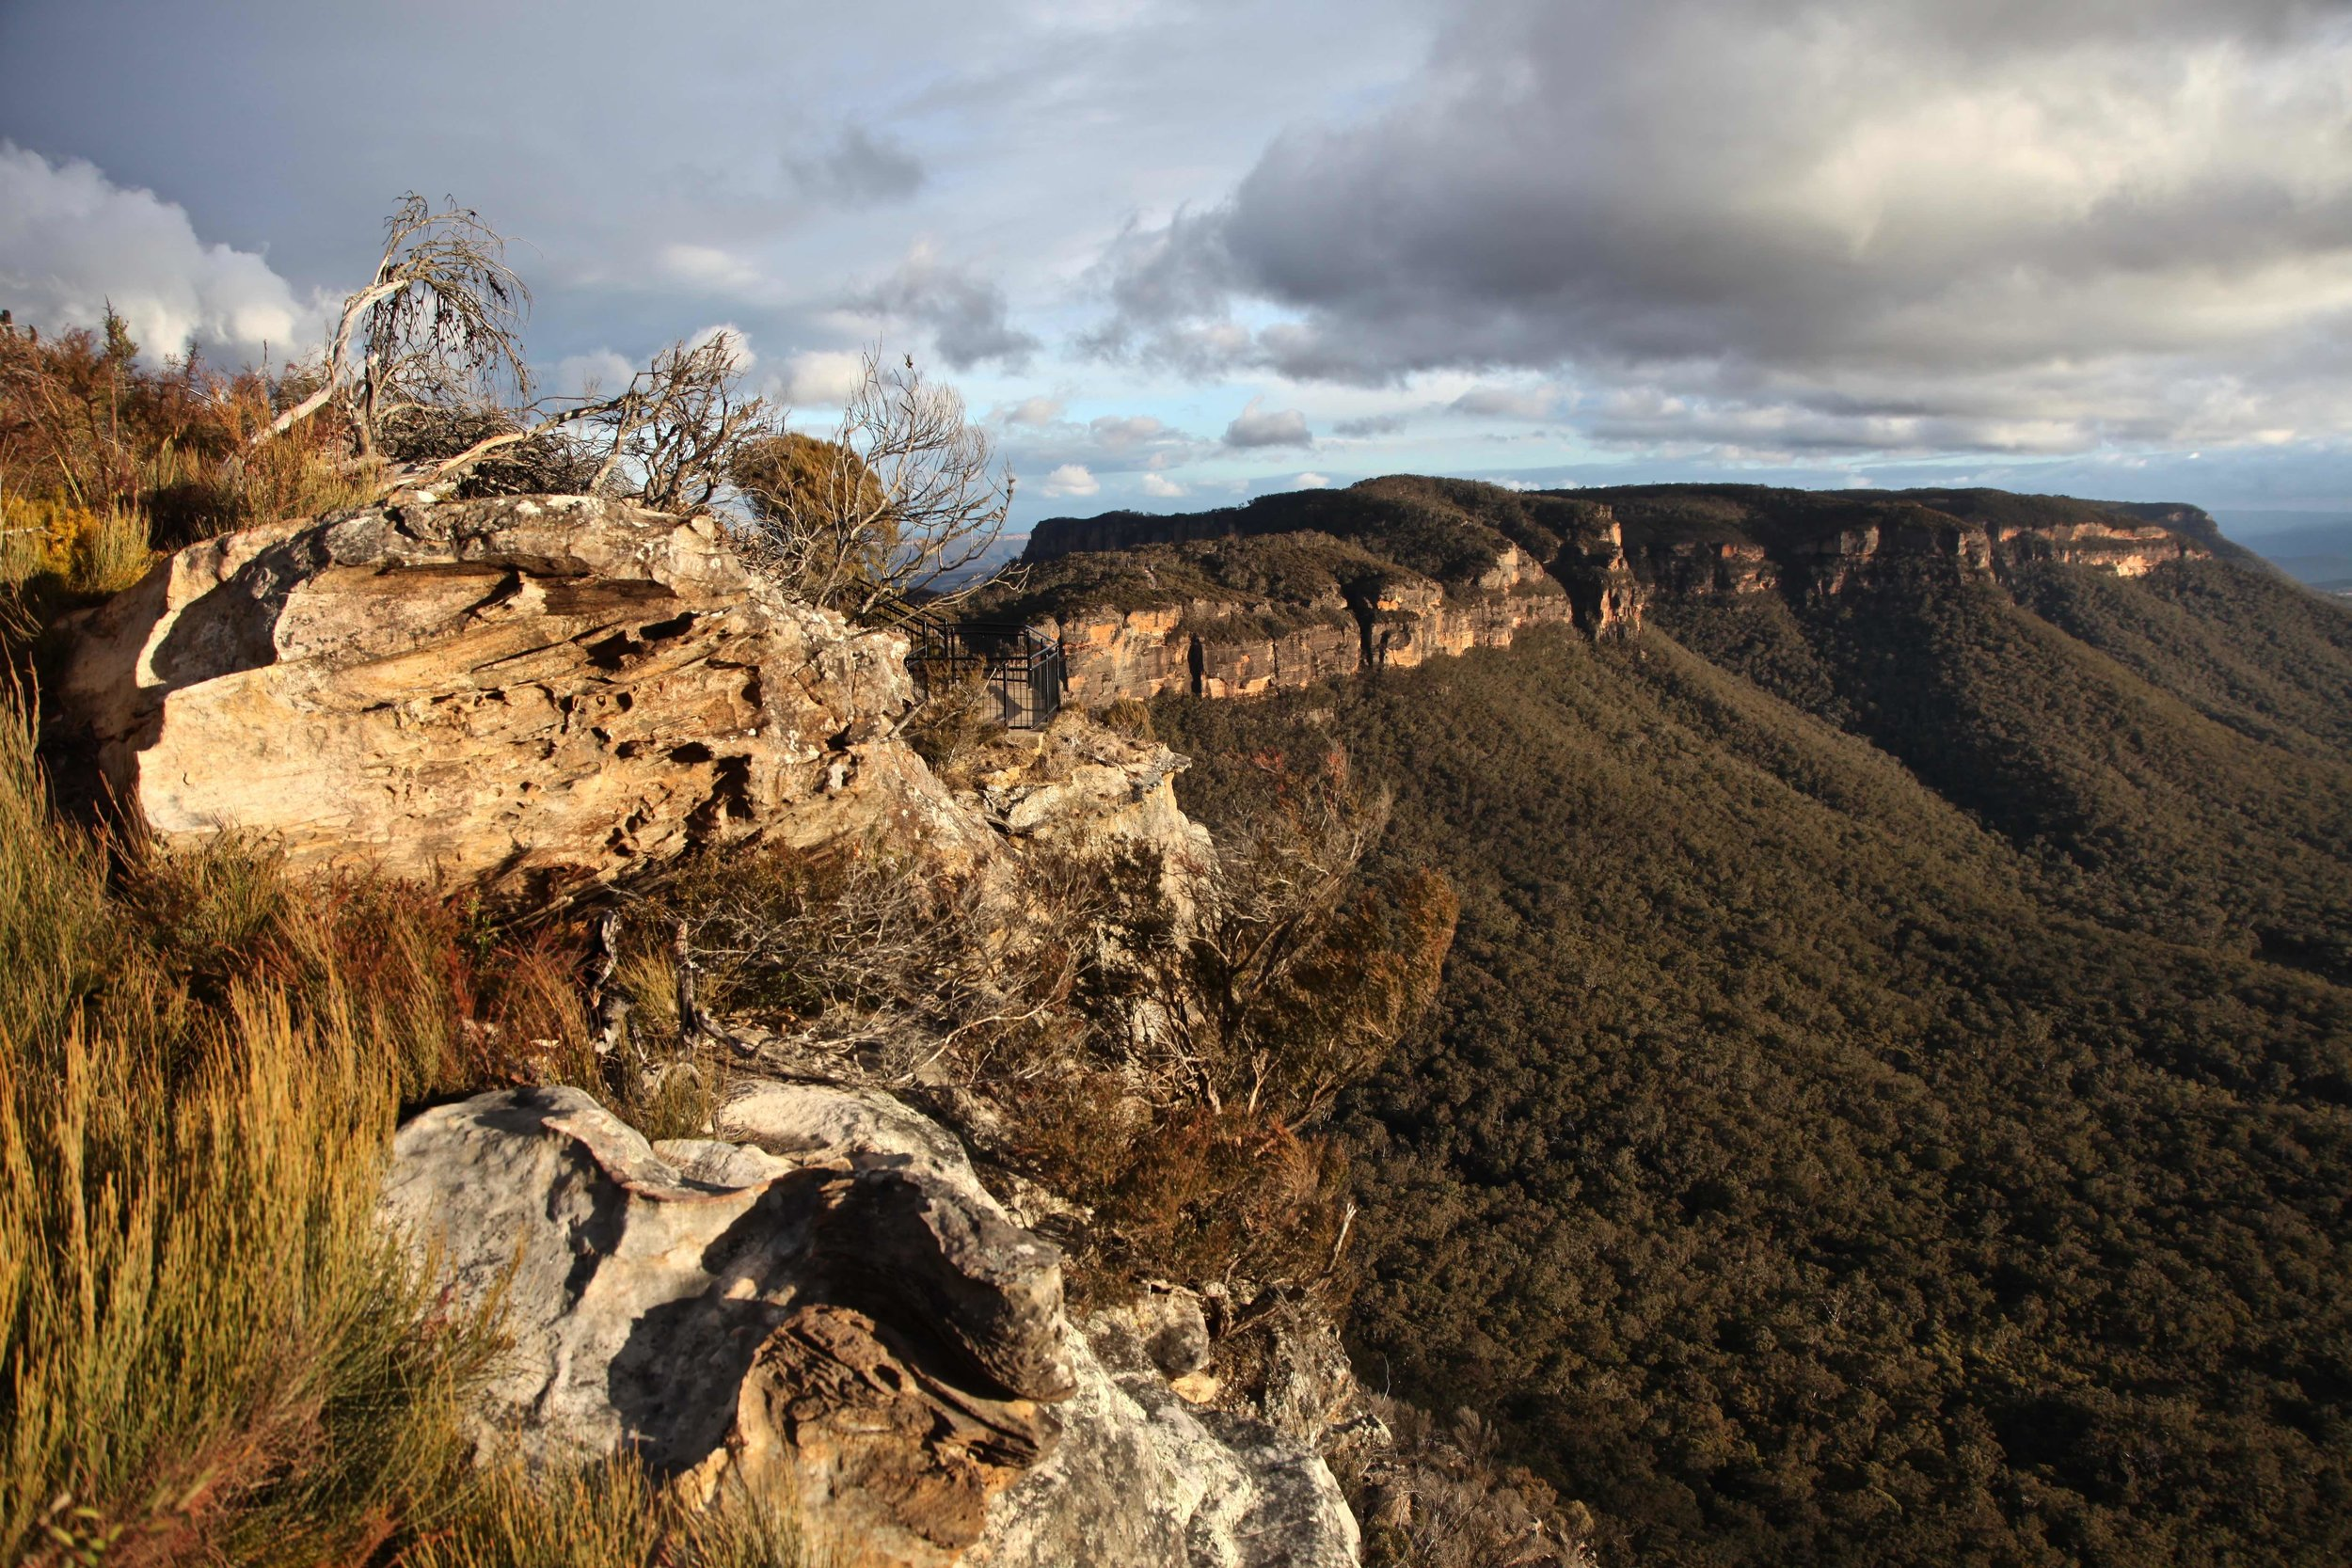 The golden hour view of Narrow Neck from Cahill's Lookout at Katoomba.